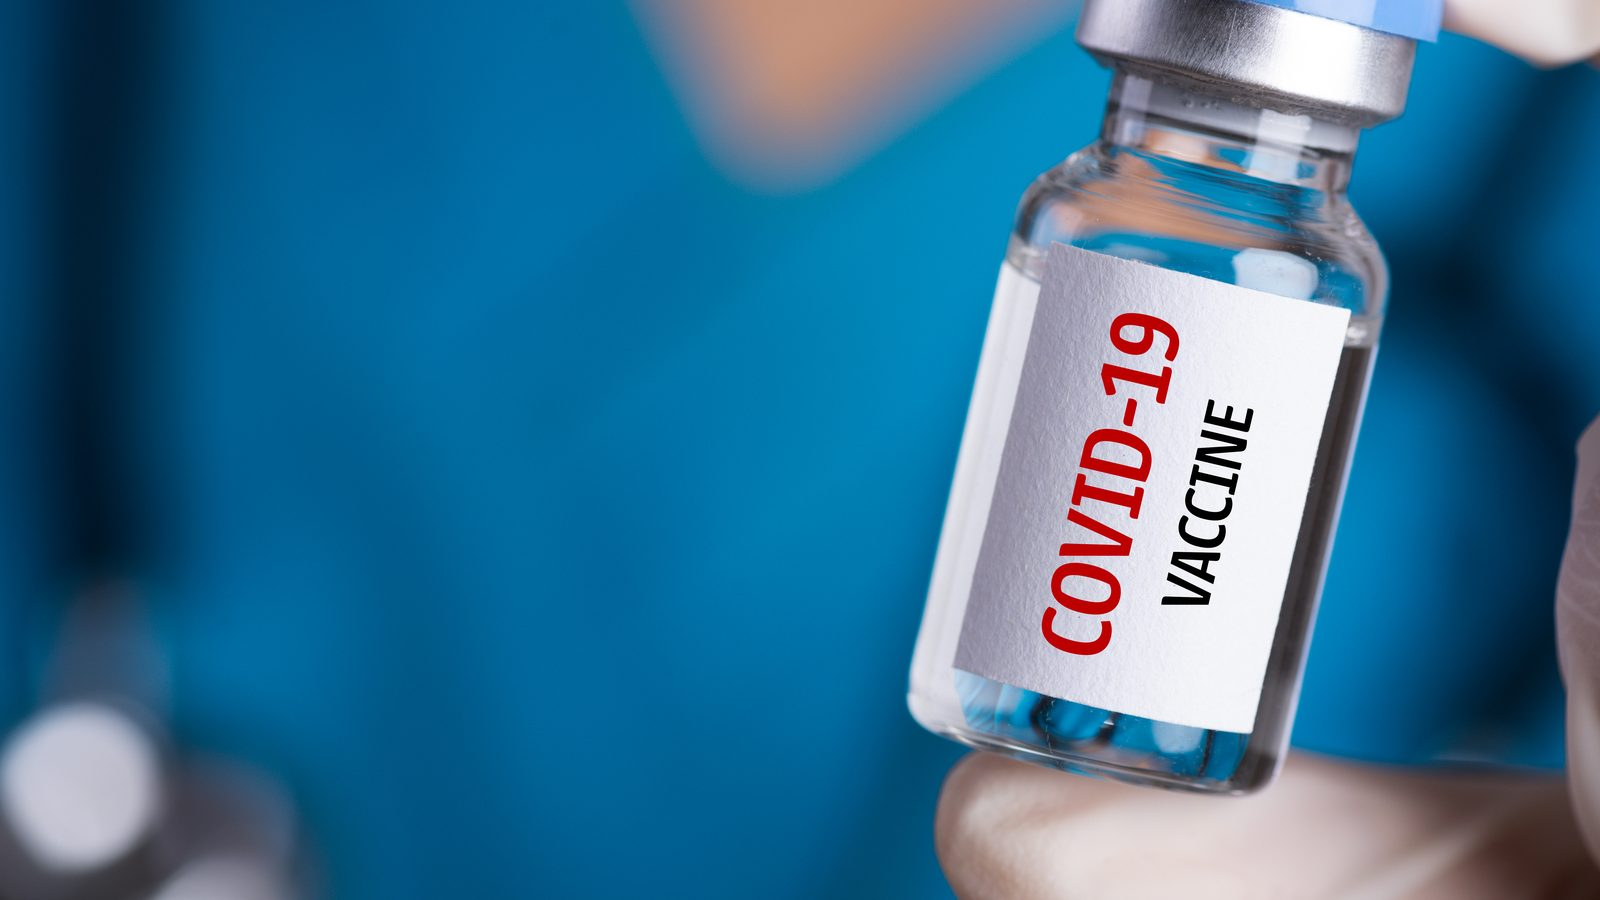 COVID-19 Vaccine Registration Information & Links